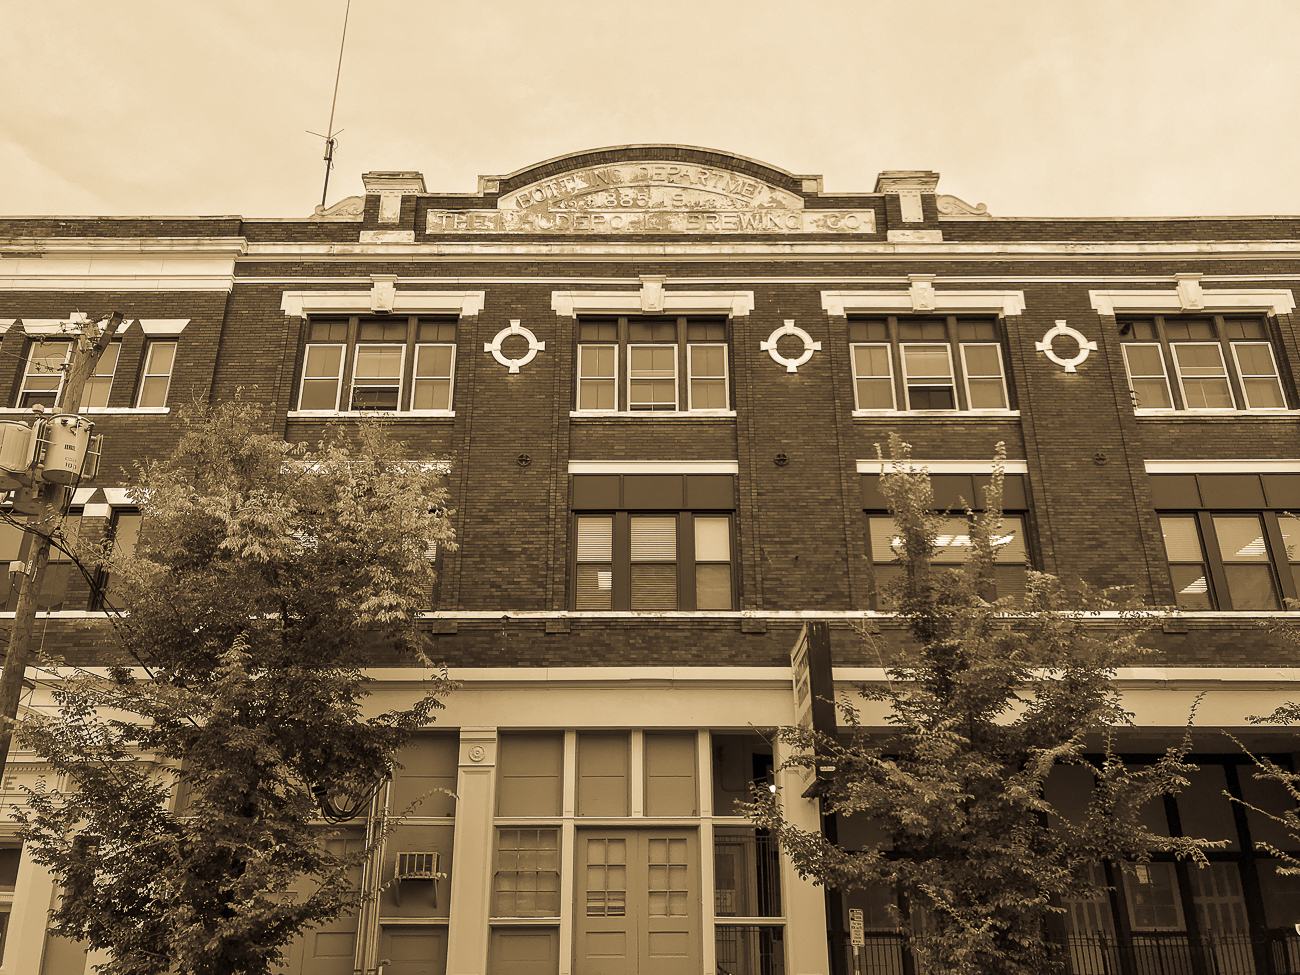 While many associate Hudepohl Brewing Company with the Queensgate location, the original location was actually on McMicken Avenue. It handled operations at this location until after Prohibition was repealed. In the '30s, the company moved operations to 6th Street, and the McMicken Ave building was retired in 1953. ADDRESS: 40 E McMicken Ave. (45202) / Image: Cincinnati Refined // Published: 6.14.19